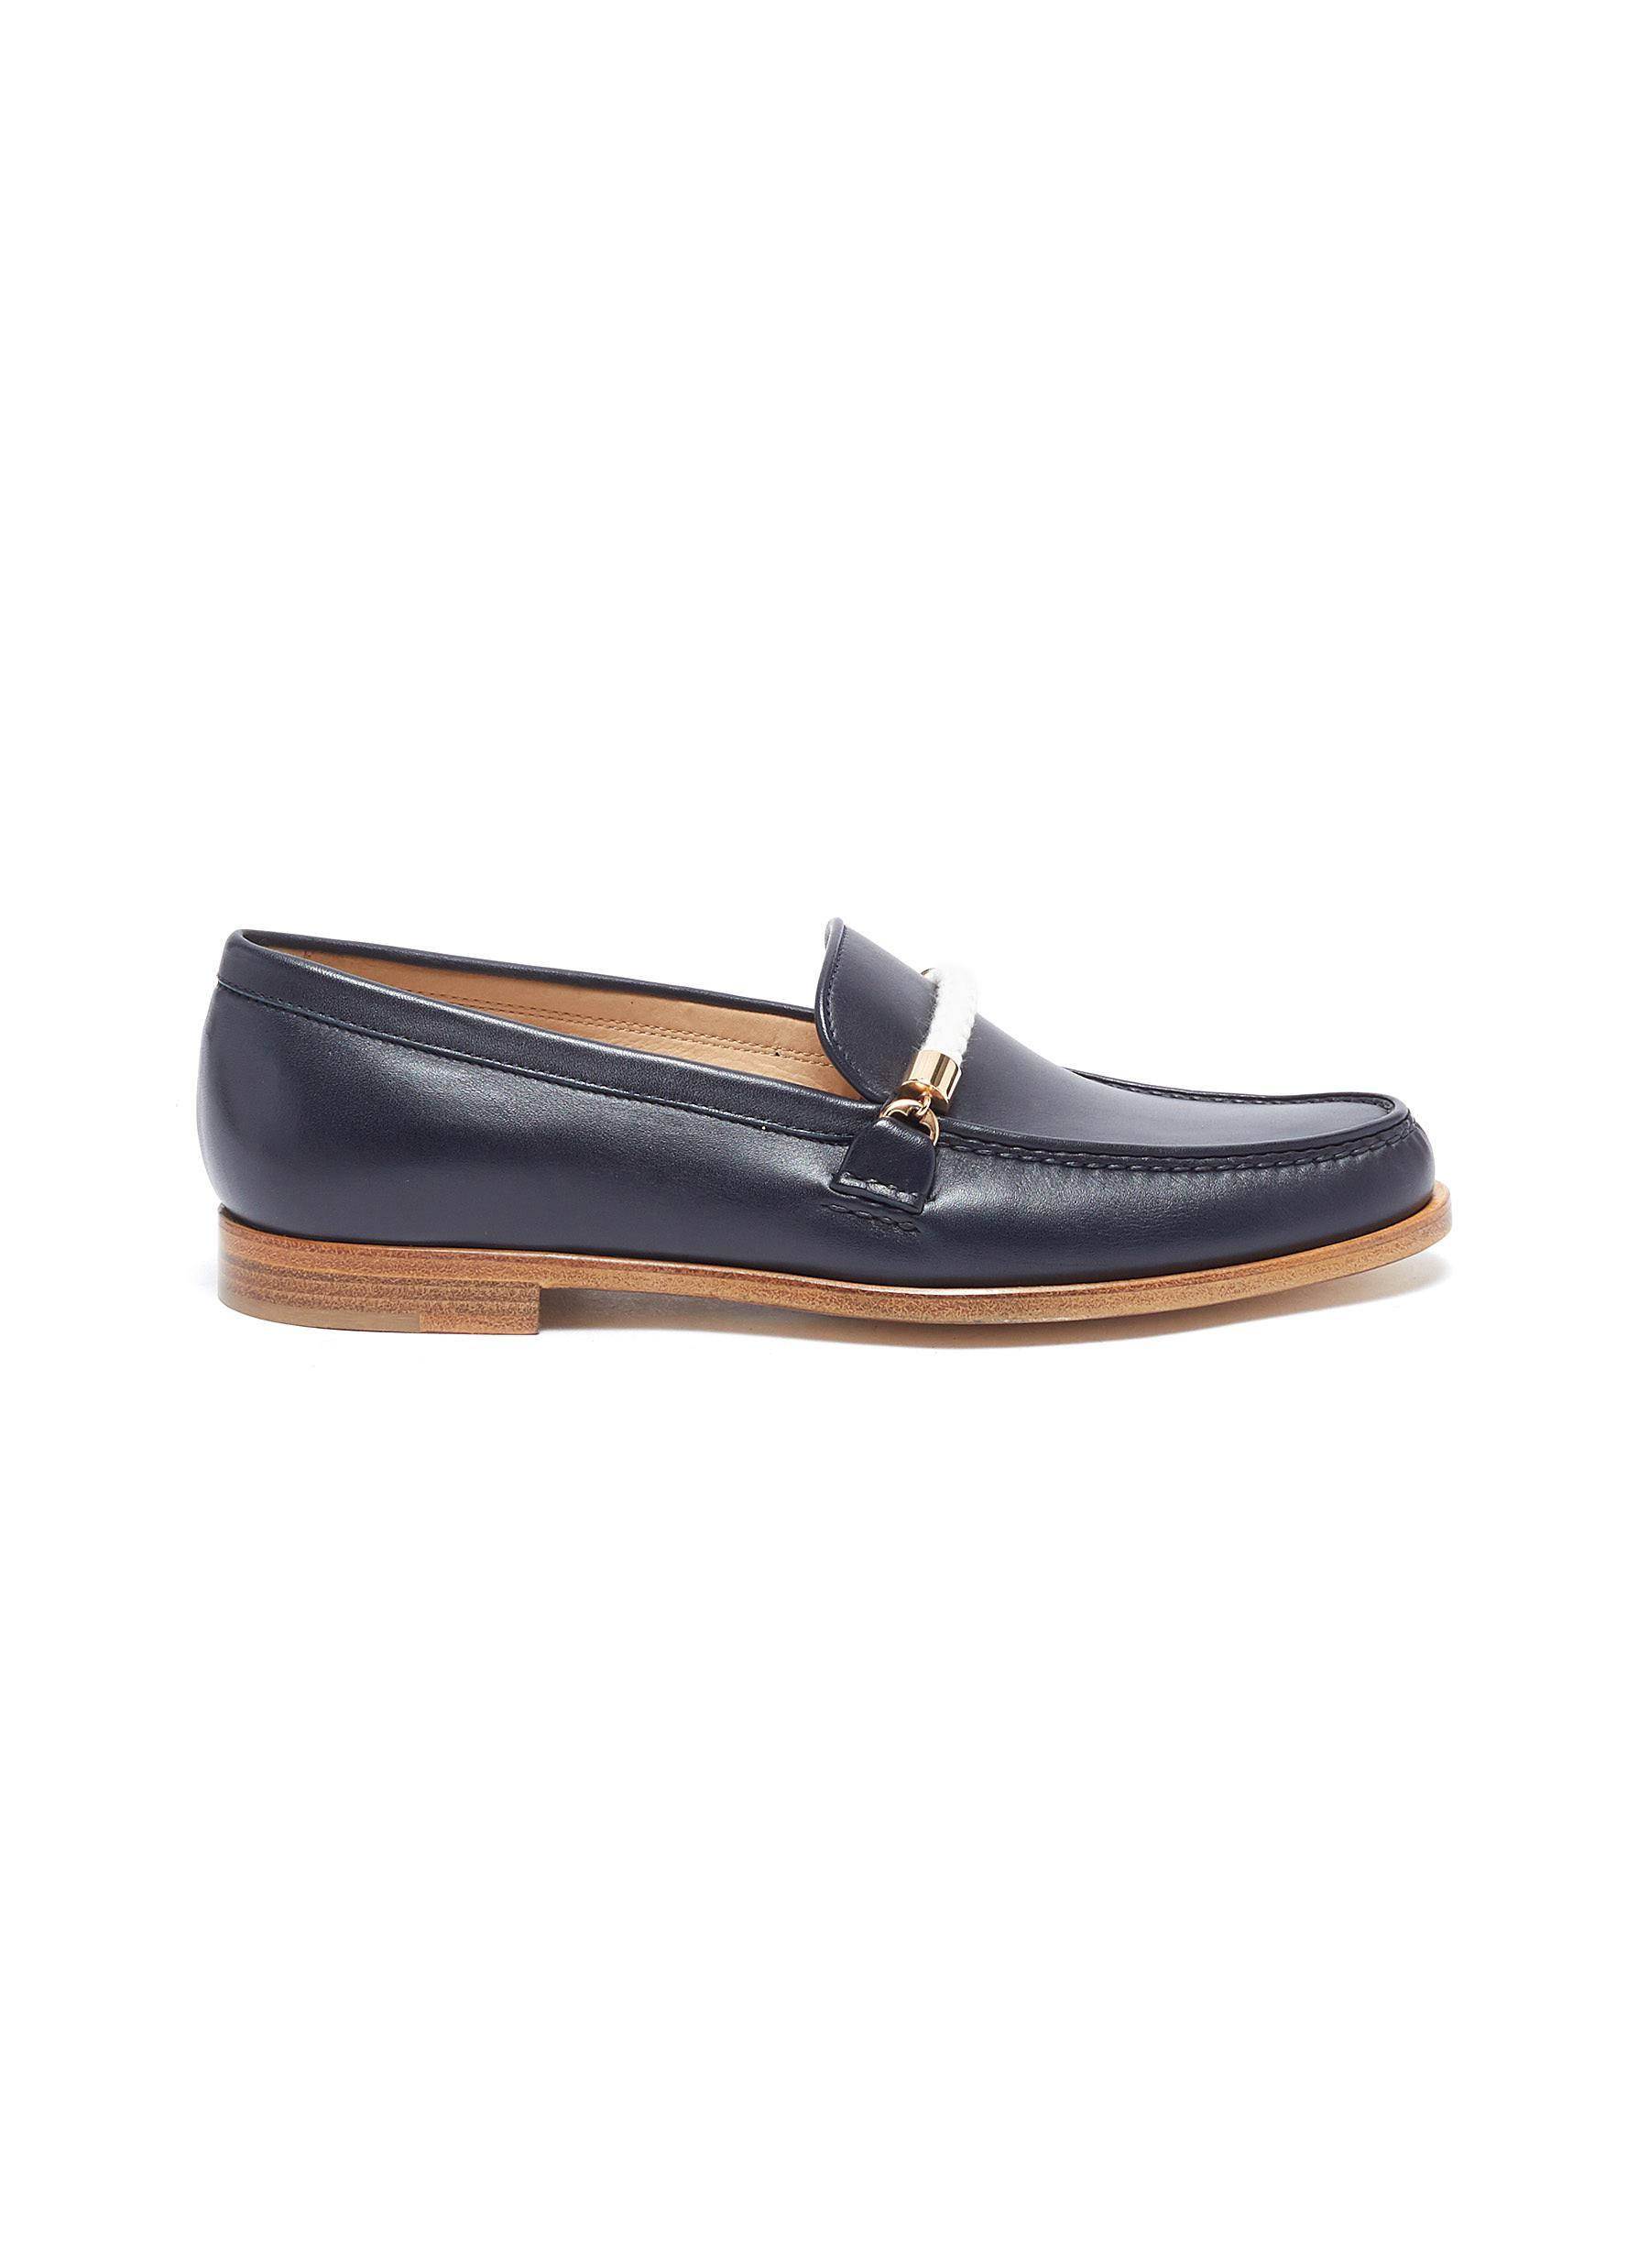 Gabriela Hearst Flats Renault rope detail leather loafers